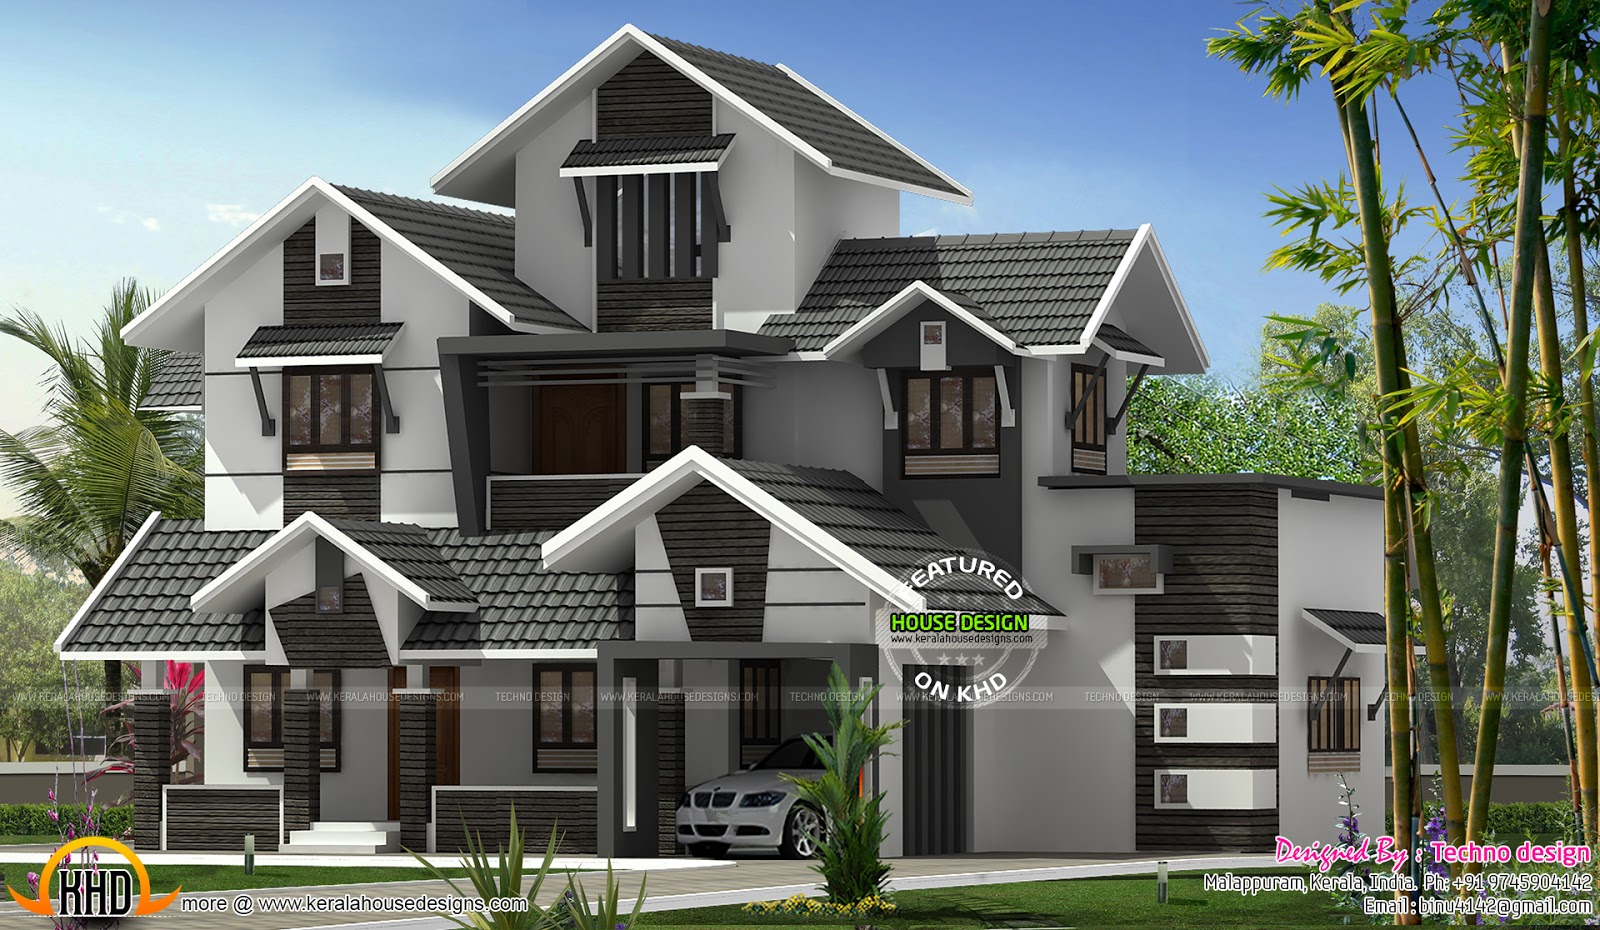 Modern kerala home design kerala home design and floor plans for Kerala houses designs